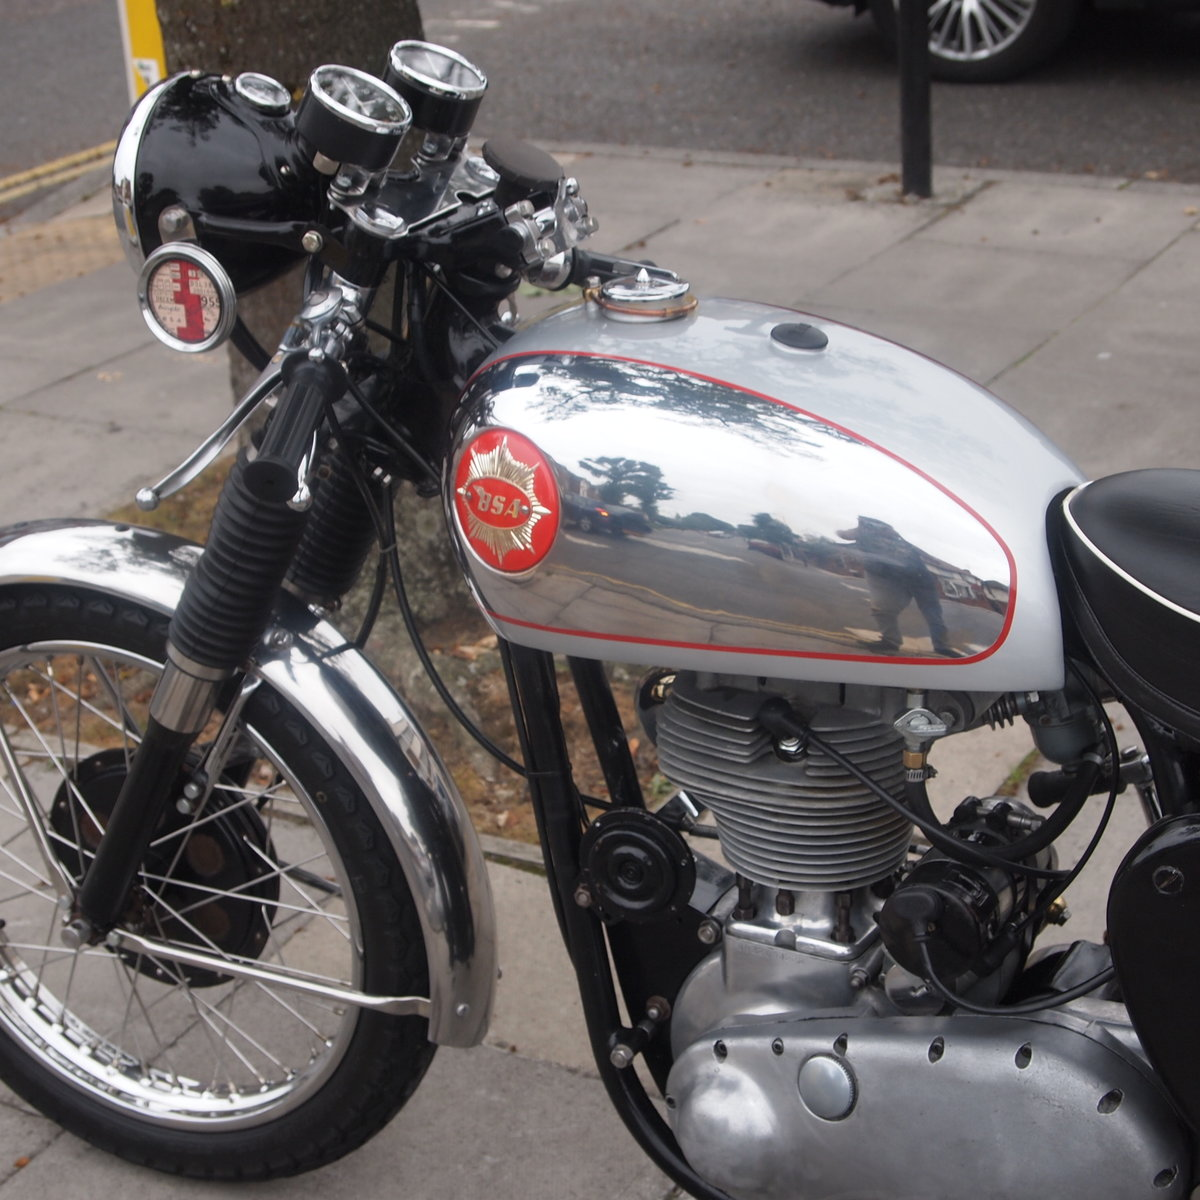 1955 BSA Gold Star 350 With Amal And GP Carb, Nice Motorcycle. For Sale (picture 5 of 6)